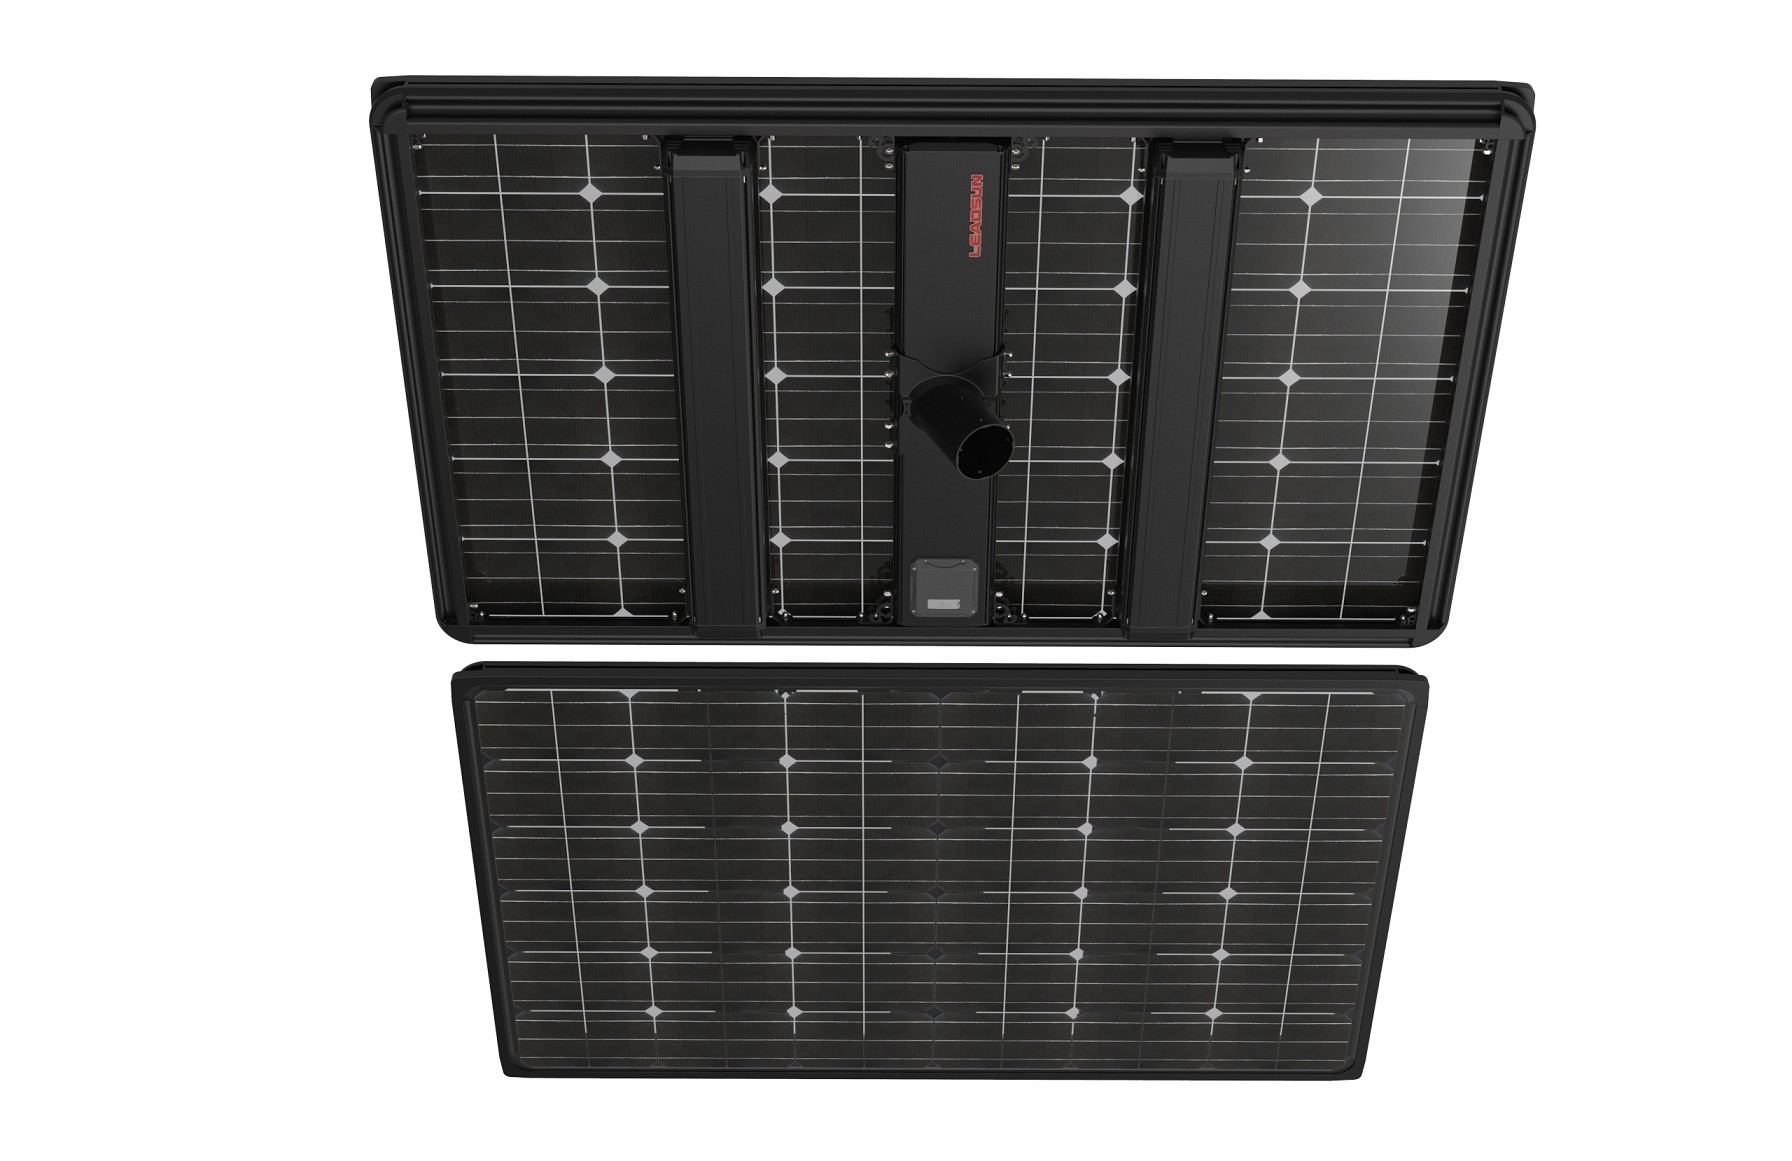 HC841AE6S130V12B58 - Solar Street Light AE6 Black Ultron Split Type, 130W PV Module